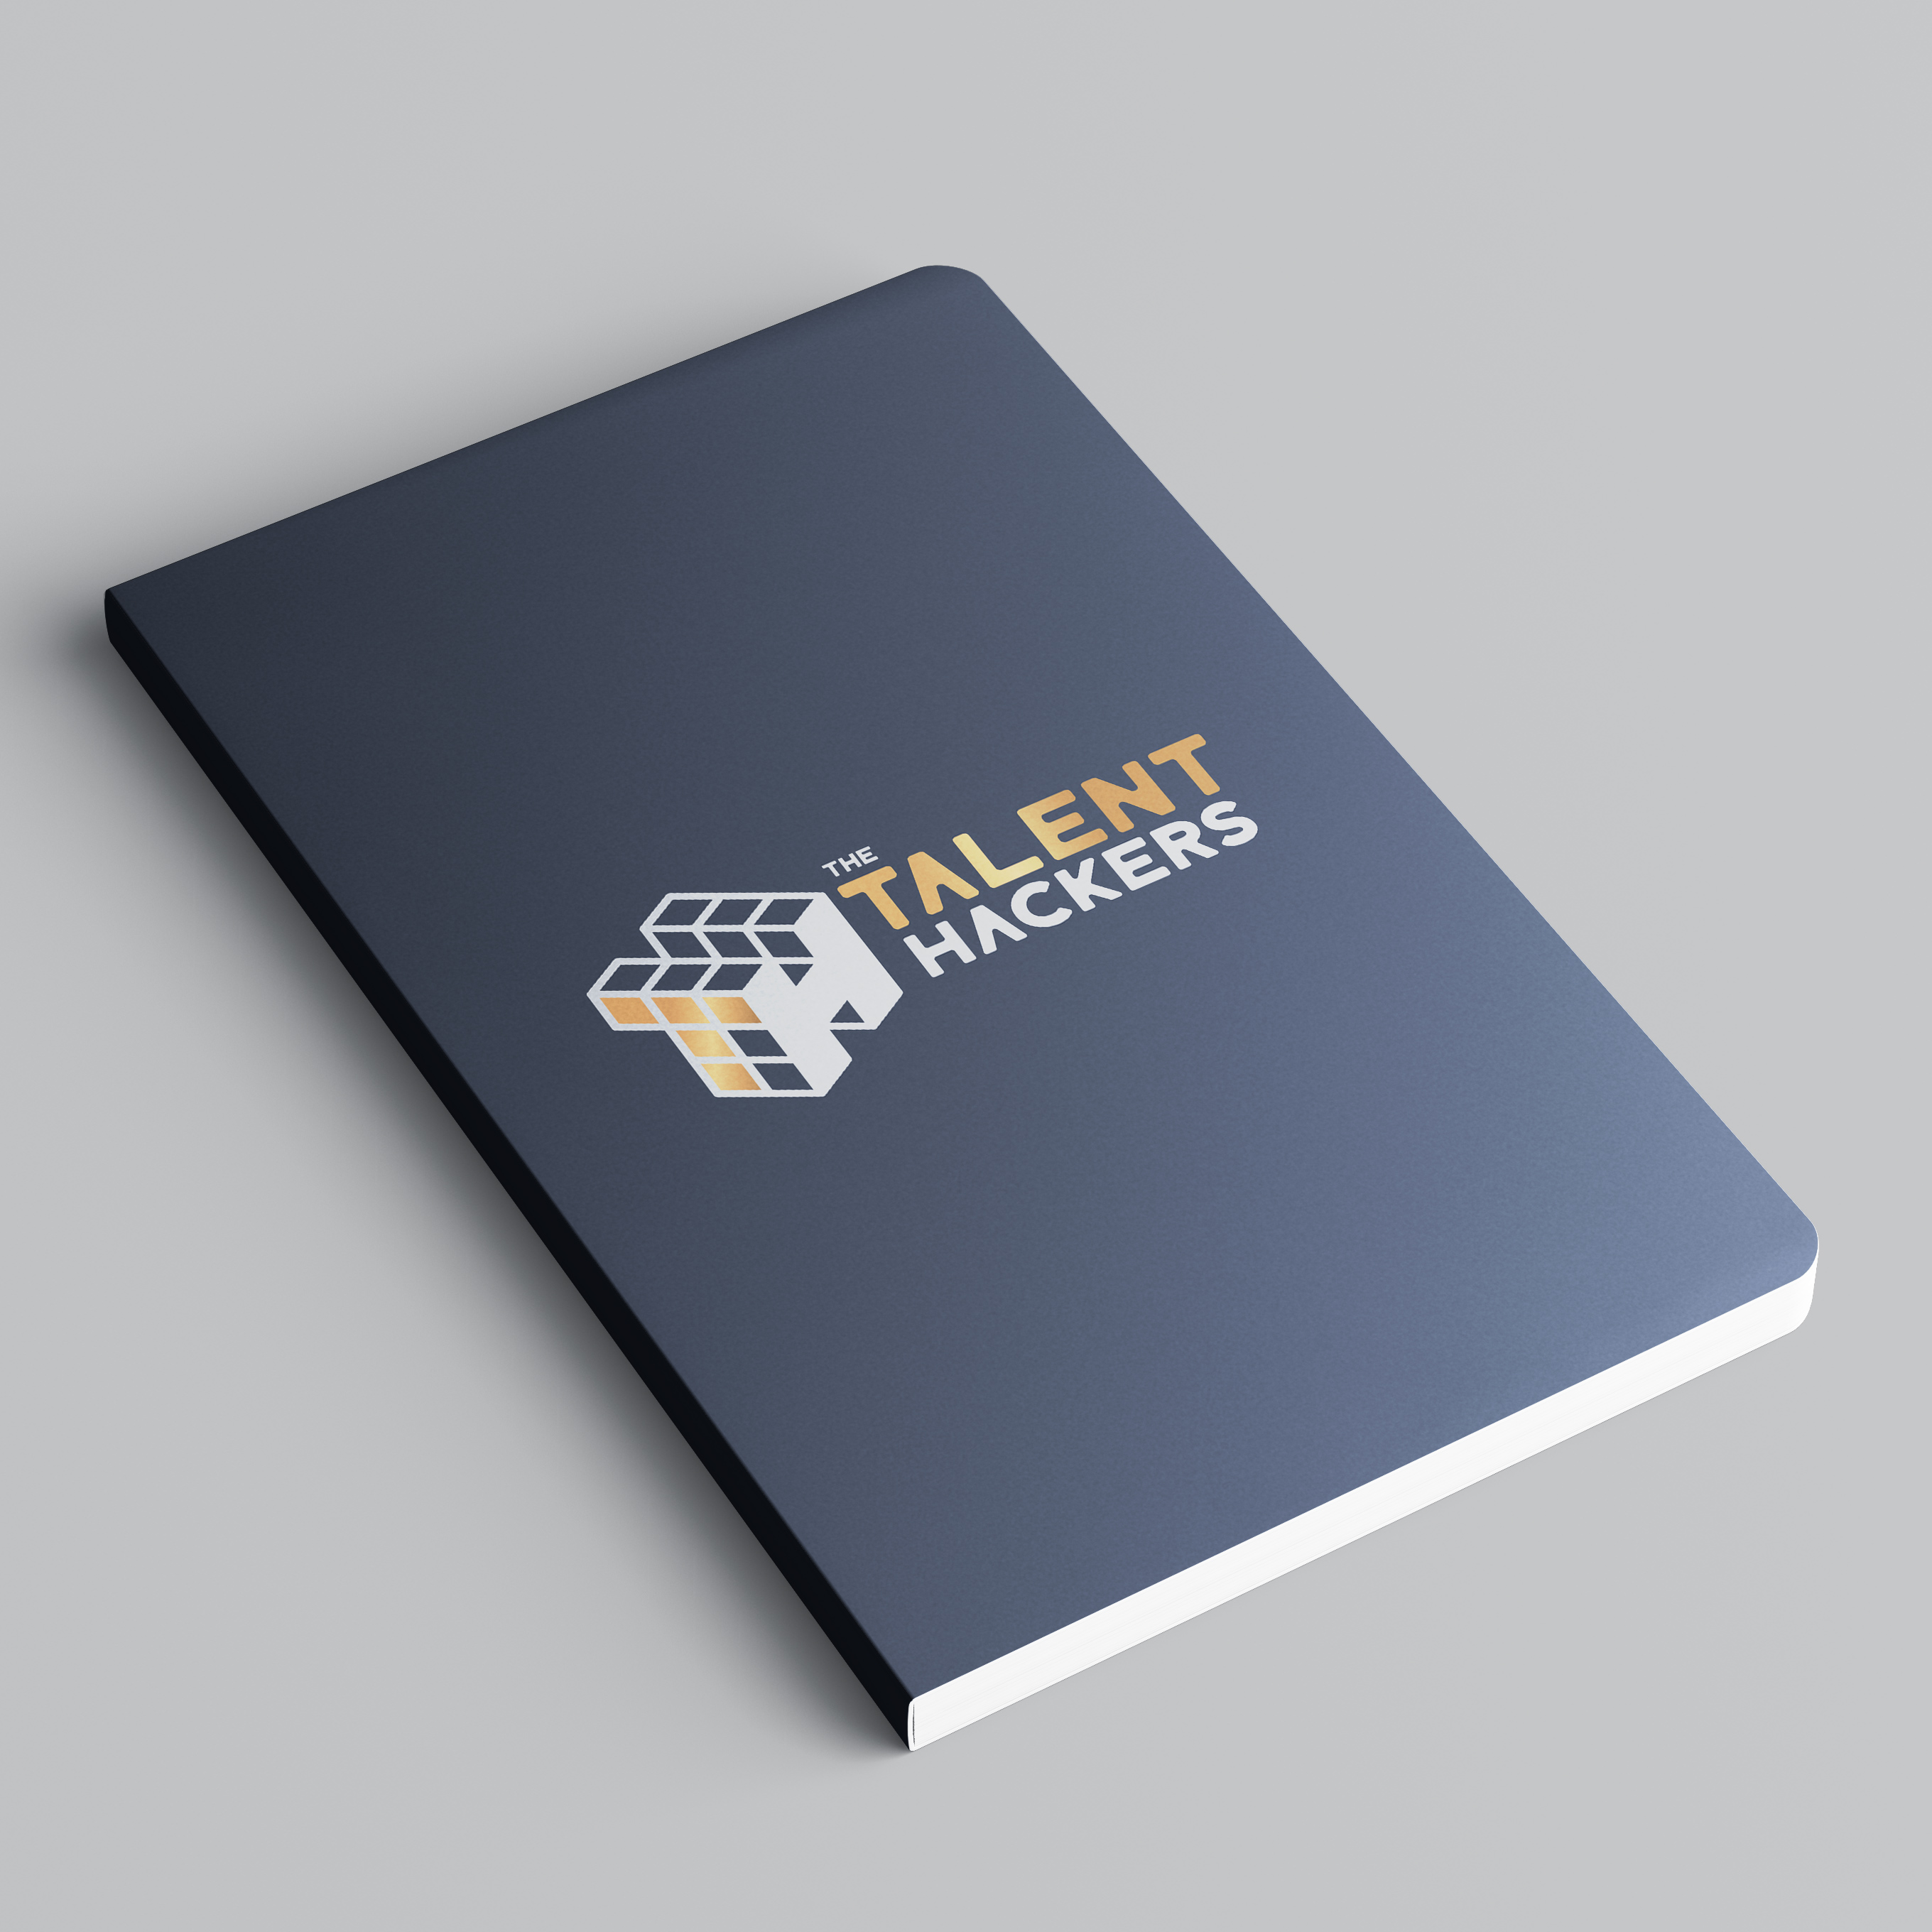 talent hackers logo redeign on a dark blue notebook